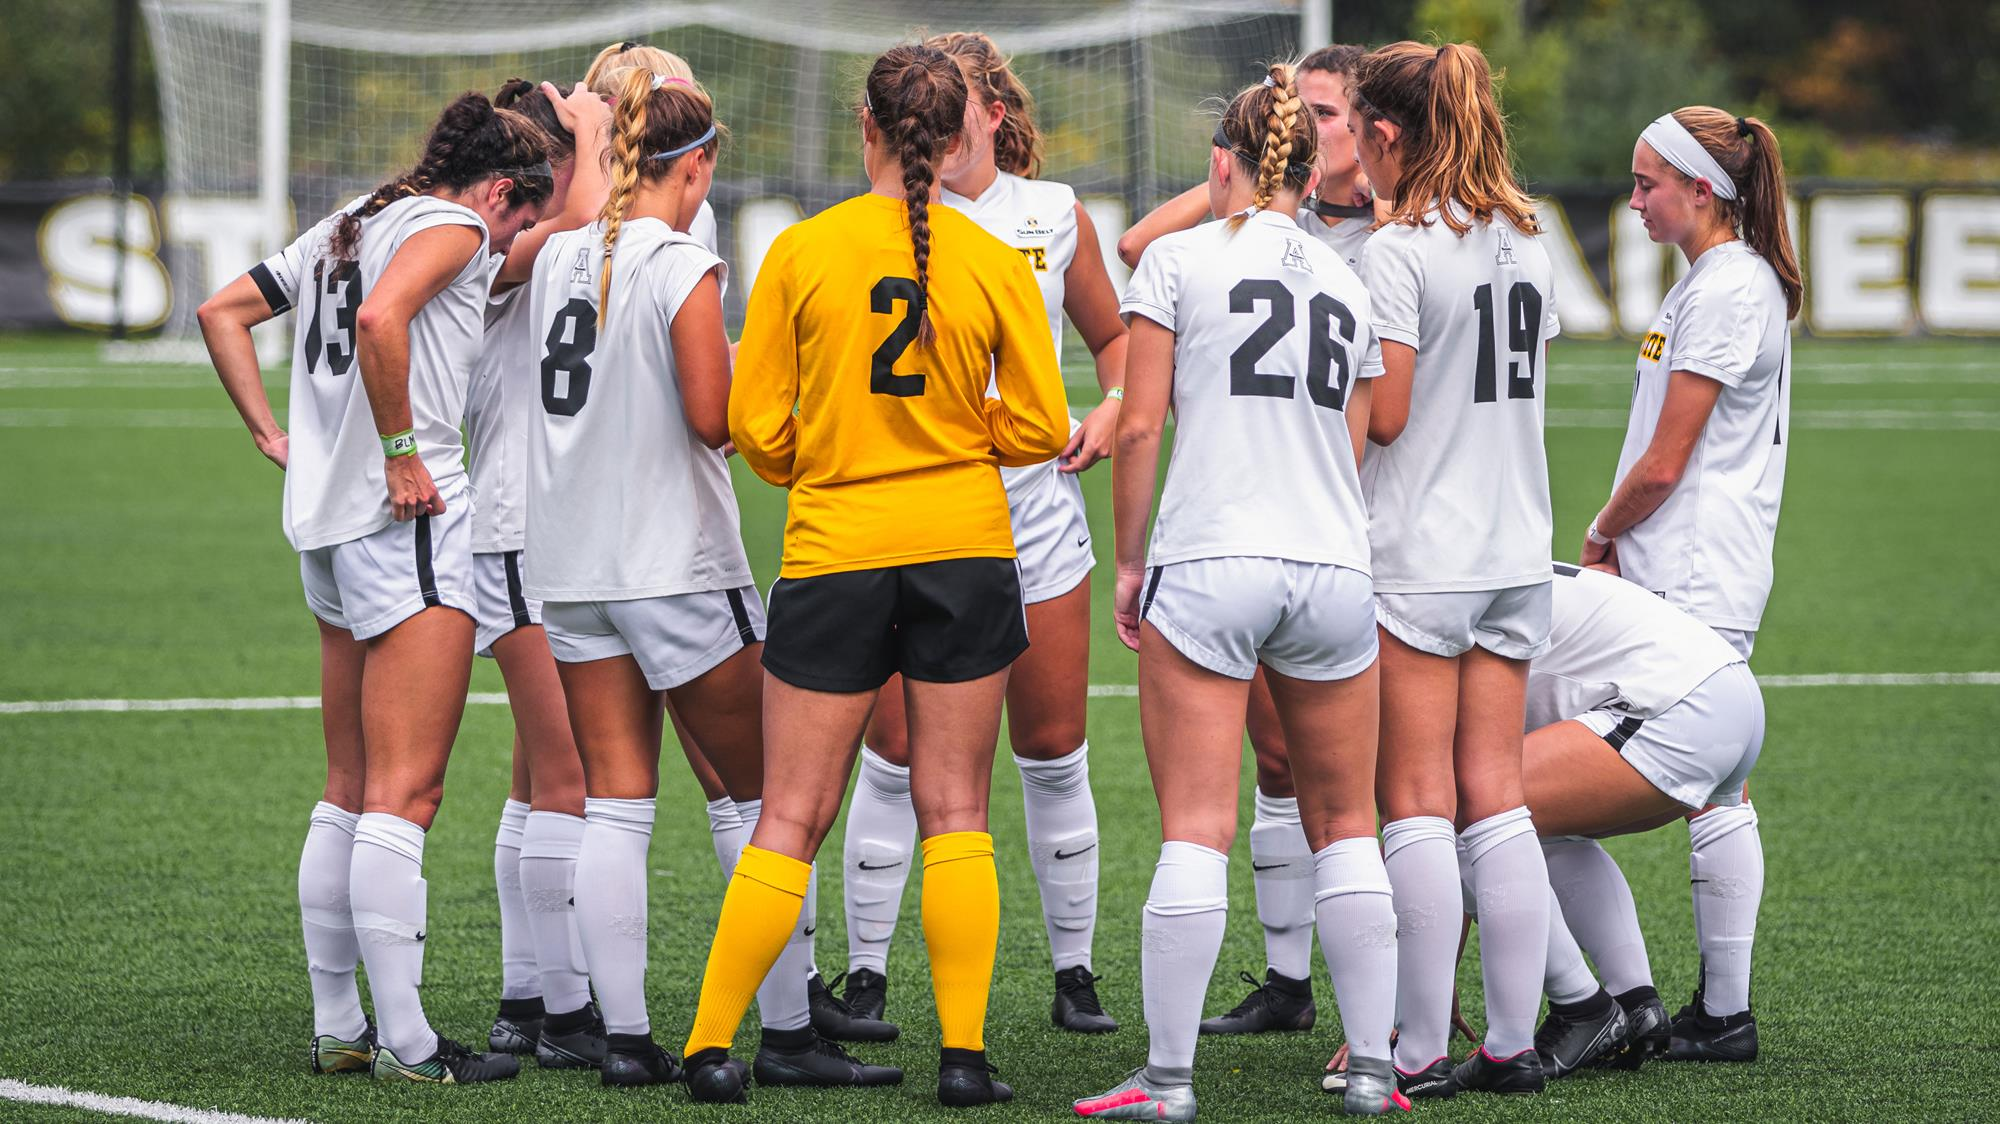 29+ App State Women's Soccer PNG